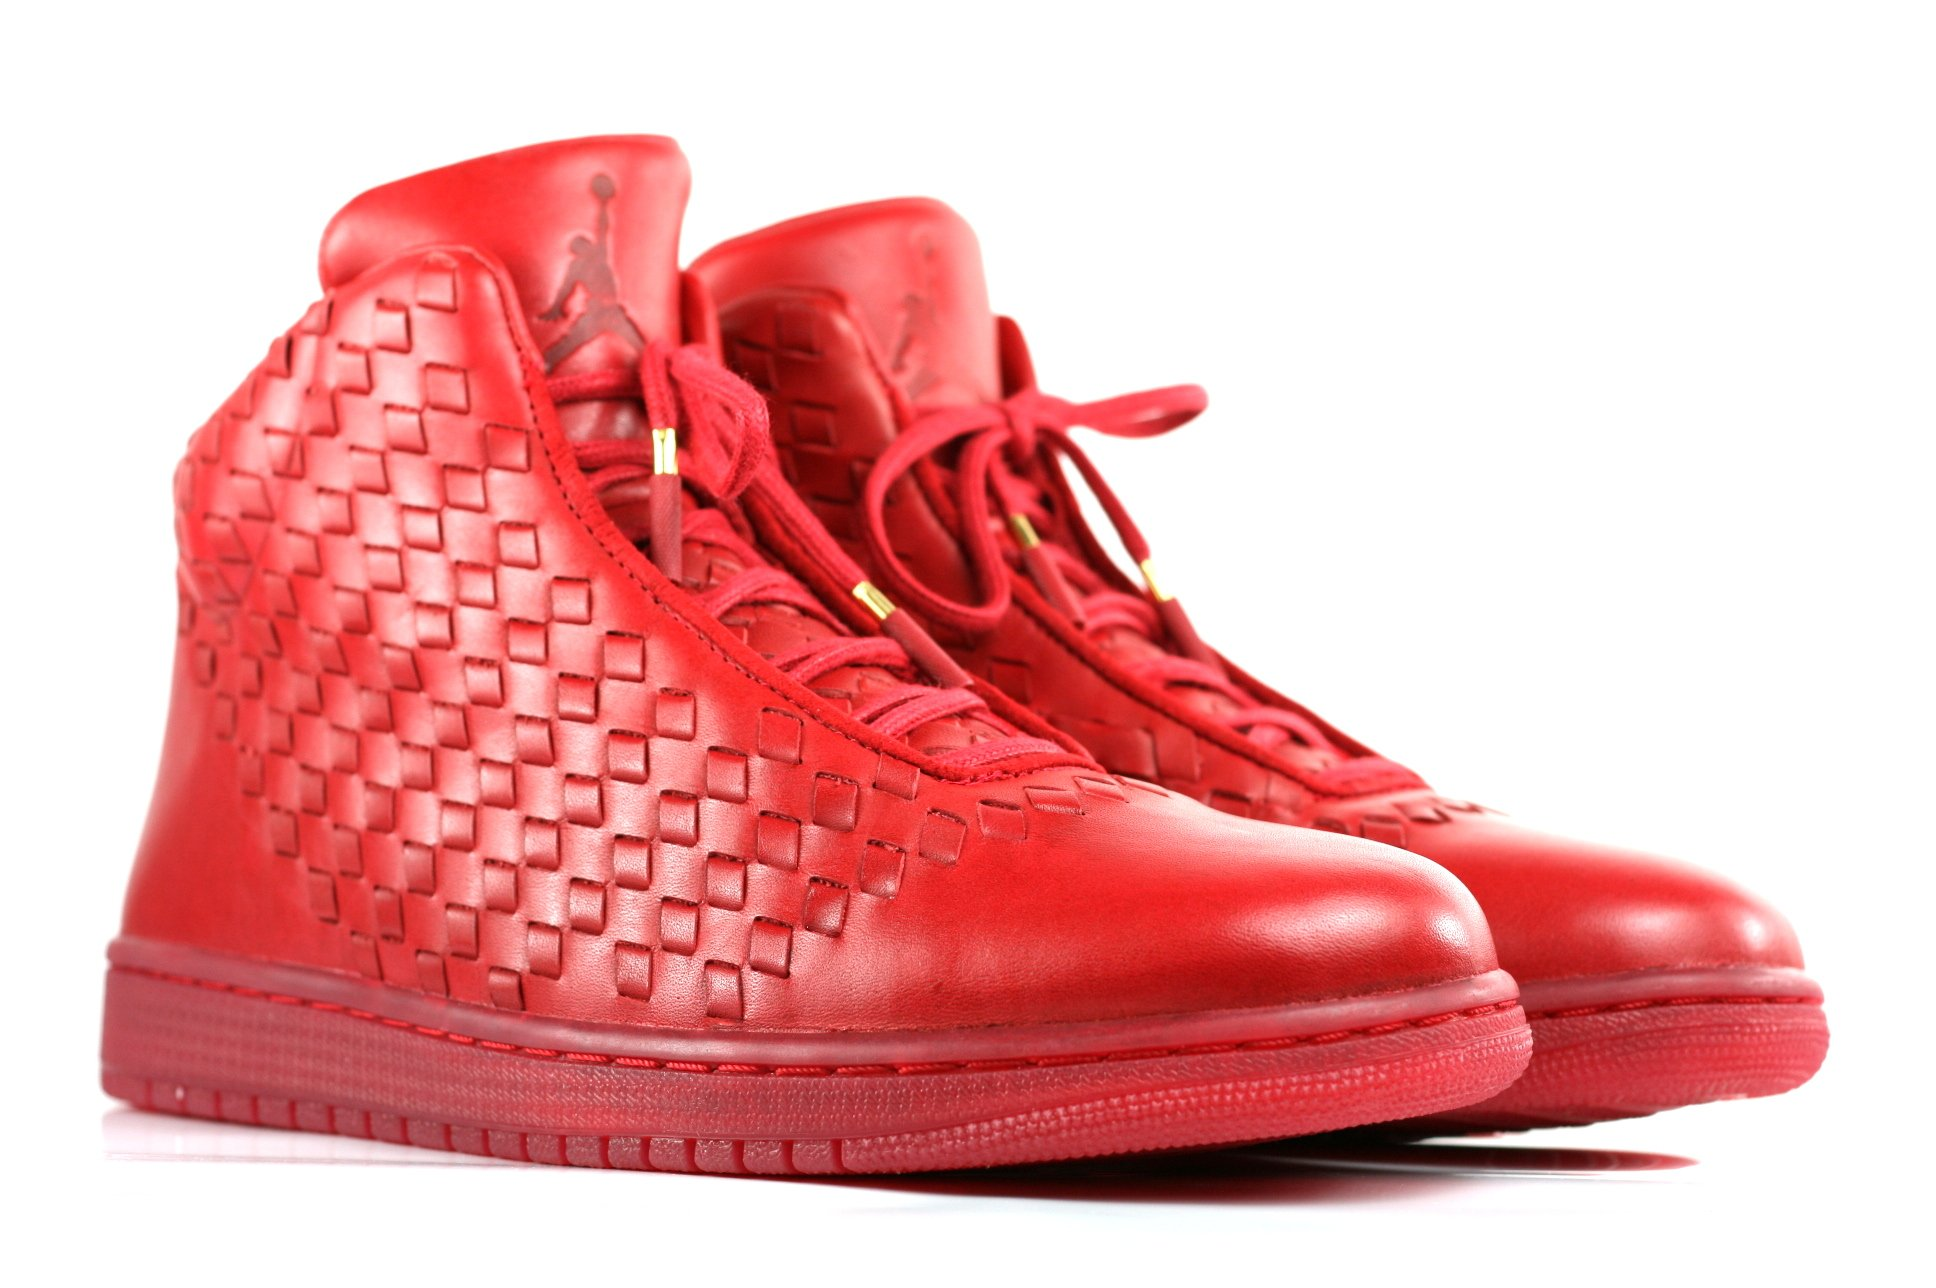 Nike Mens Jordan Shine Leather Basketball Shoes